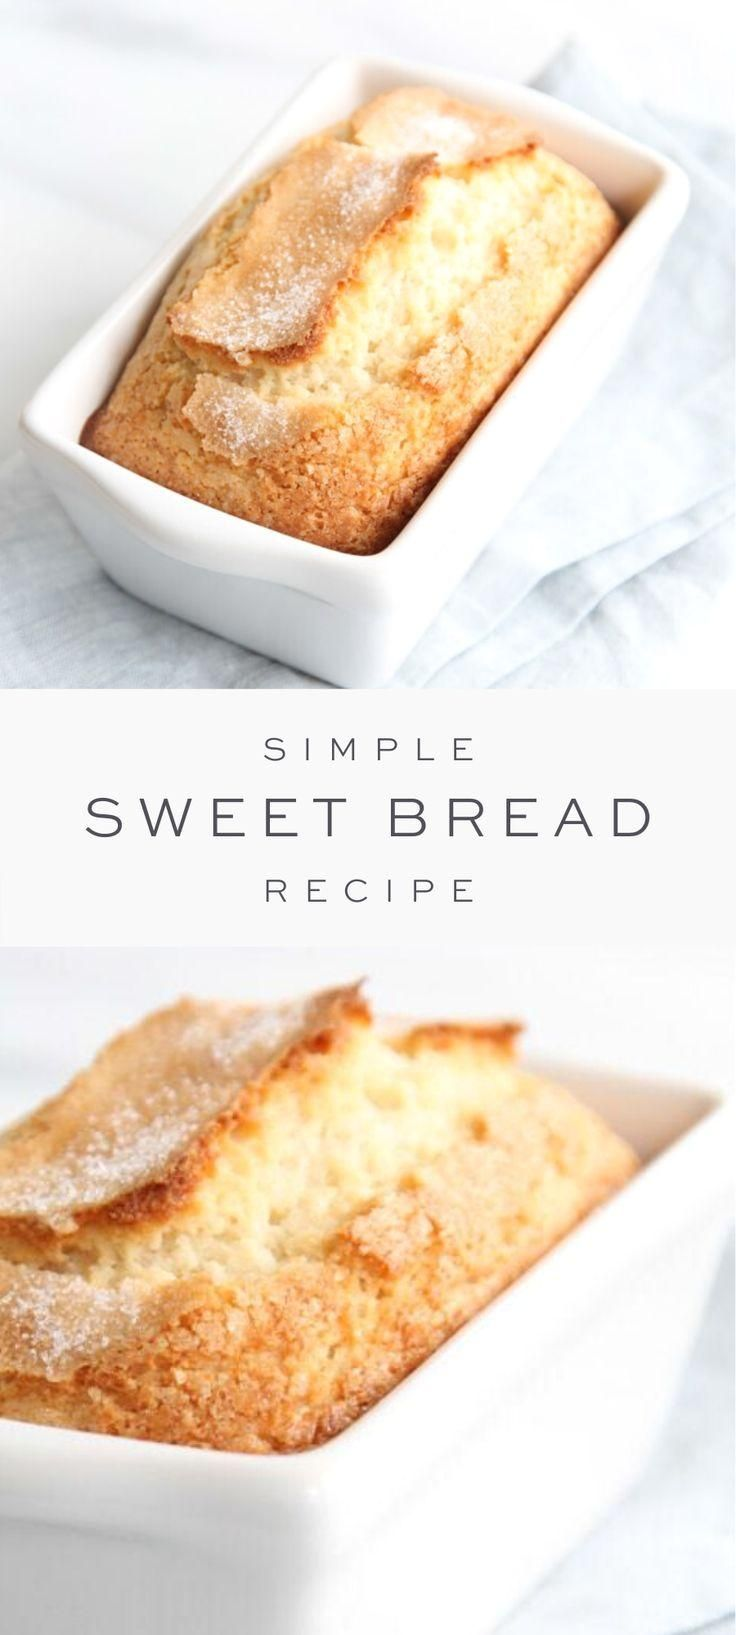 #sweetbread  #quickbread  #brunch  #breakfast  #recipe  #easter  #julieblanner #Bread #incredibly  Sweet Bread is so incredibly easy to make and only takes 5 minutes hands on time. This easy Sweet Bread recipe requires only staple ingredients: sugar, flour, baking powder, salt, eggs, milk and vegetable oil! It's easy quick bread recipe for breakfast, snack or dessert that also makes a beautiful neighbor, hostess or holiday gift!